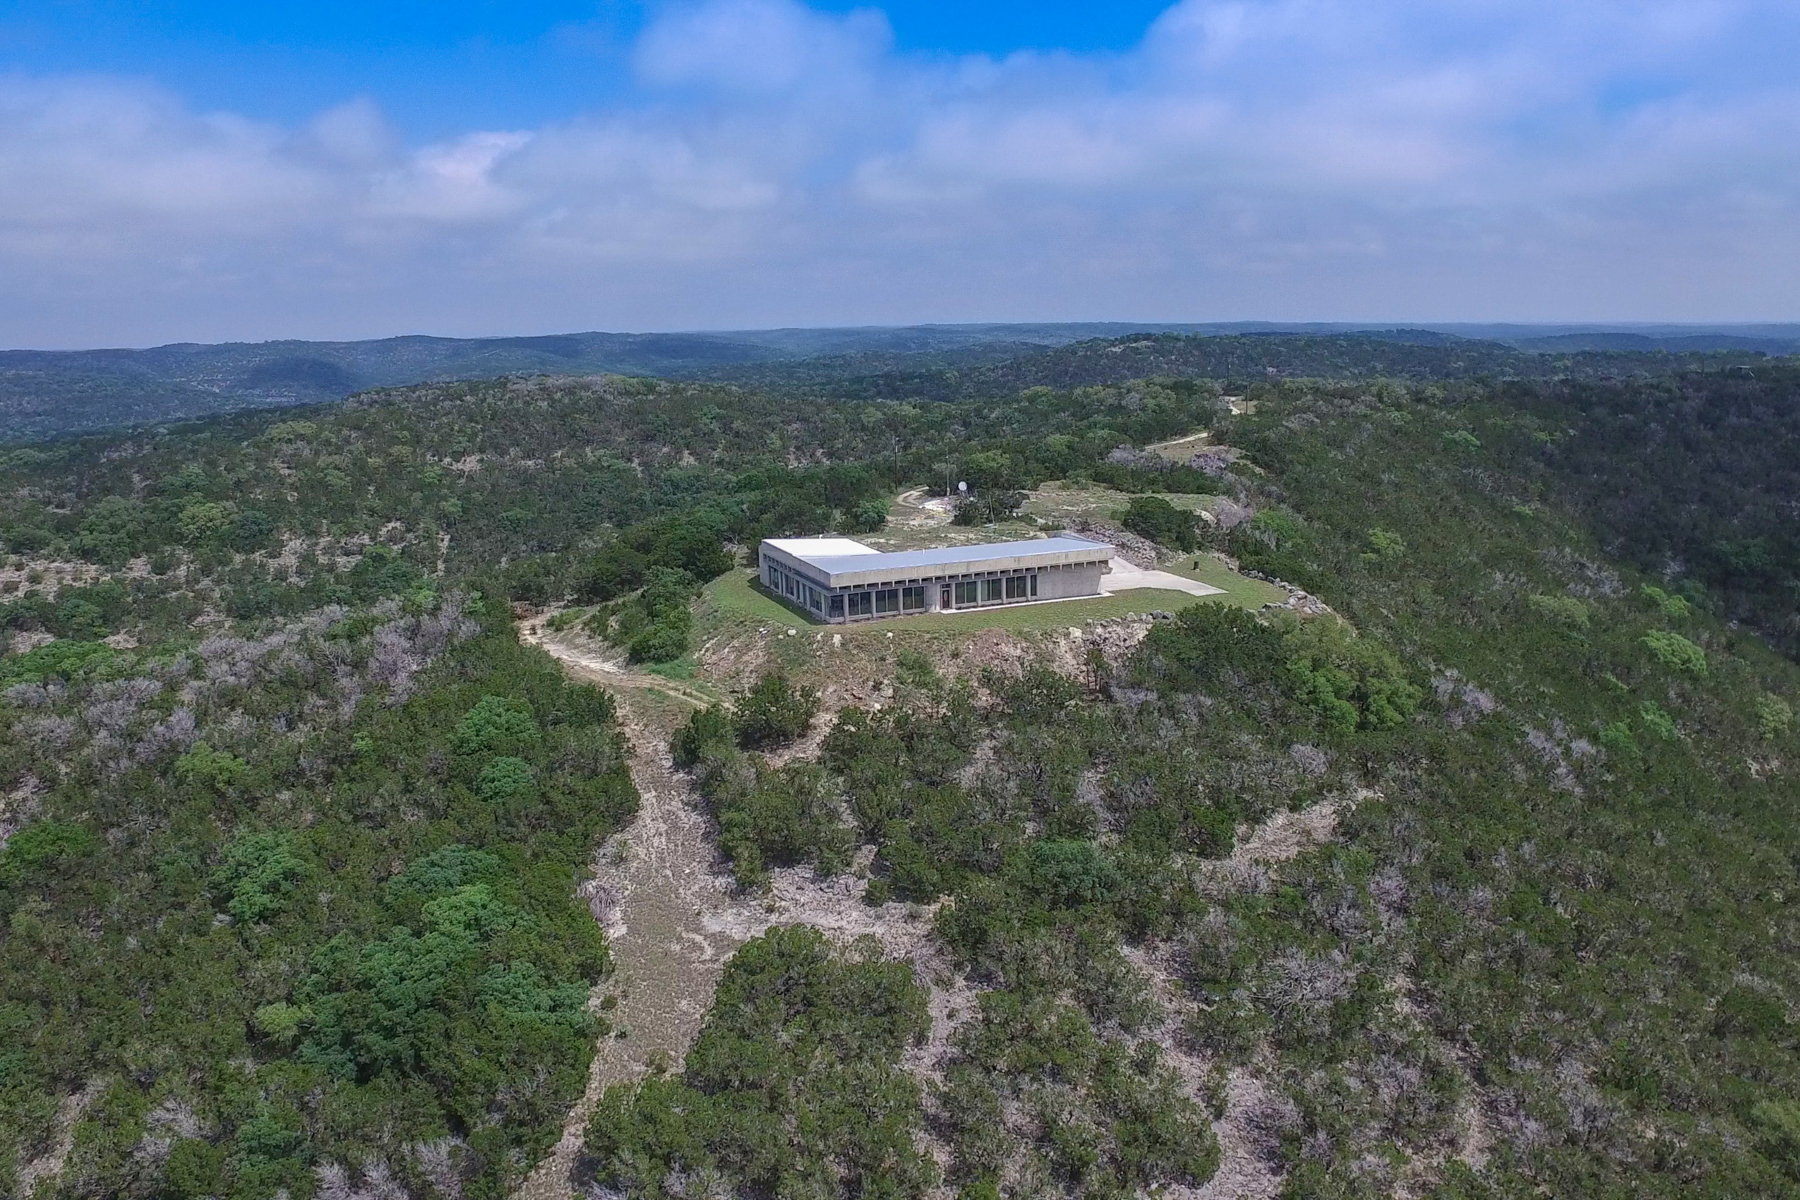 Casa Unifamiliar por un Venta en Contemporary Hill Country Retreat on 42 +/- Acres 7126 E Ranch Road 337 Leakey, Texas 78873 Estados Unidos